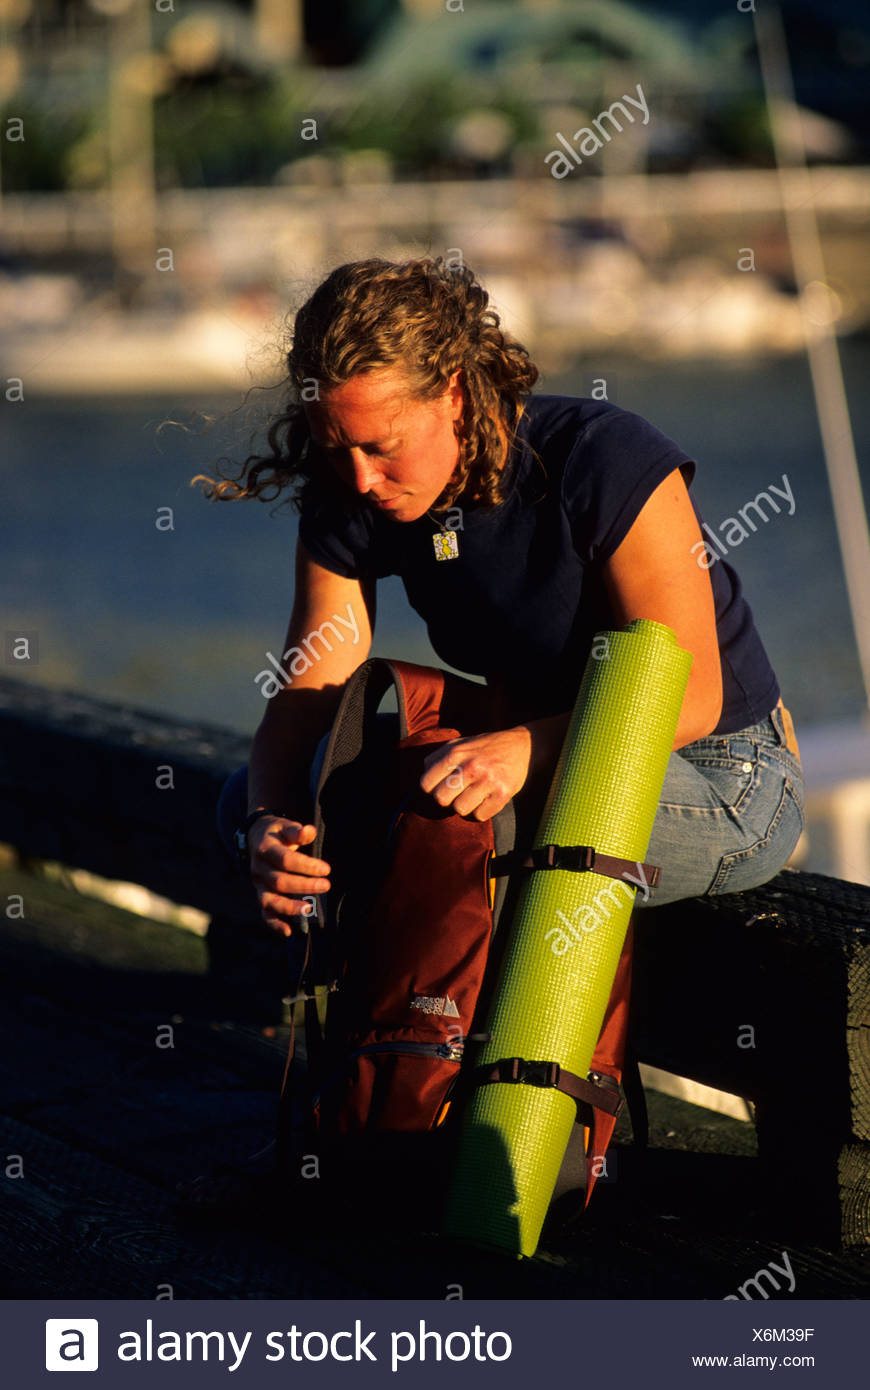 Woman sitting on warf at public market. Granville Island, Vancouver, British Columbia. - Stock Image